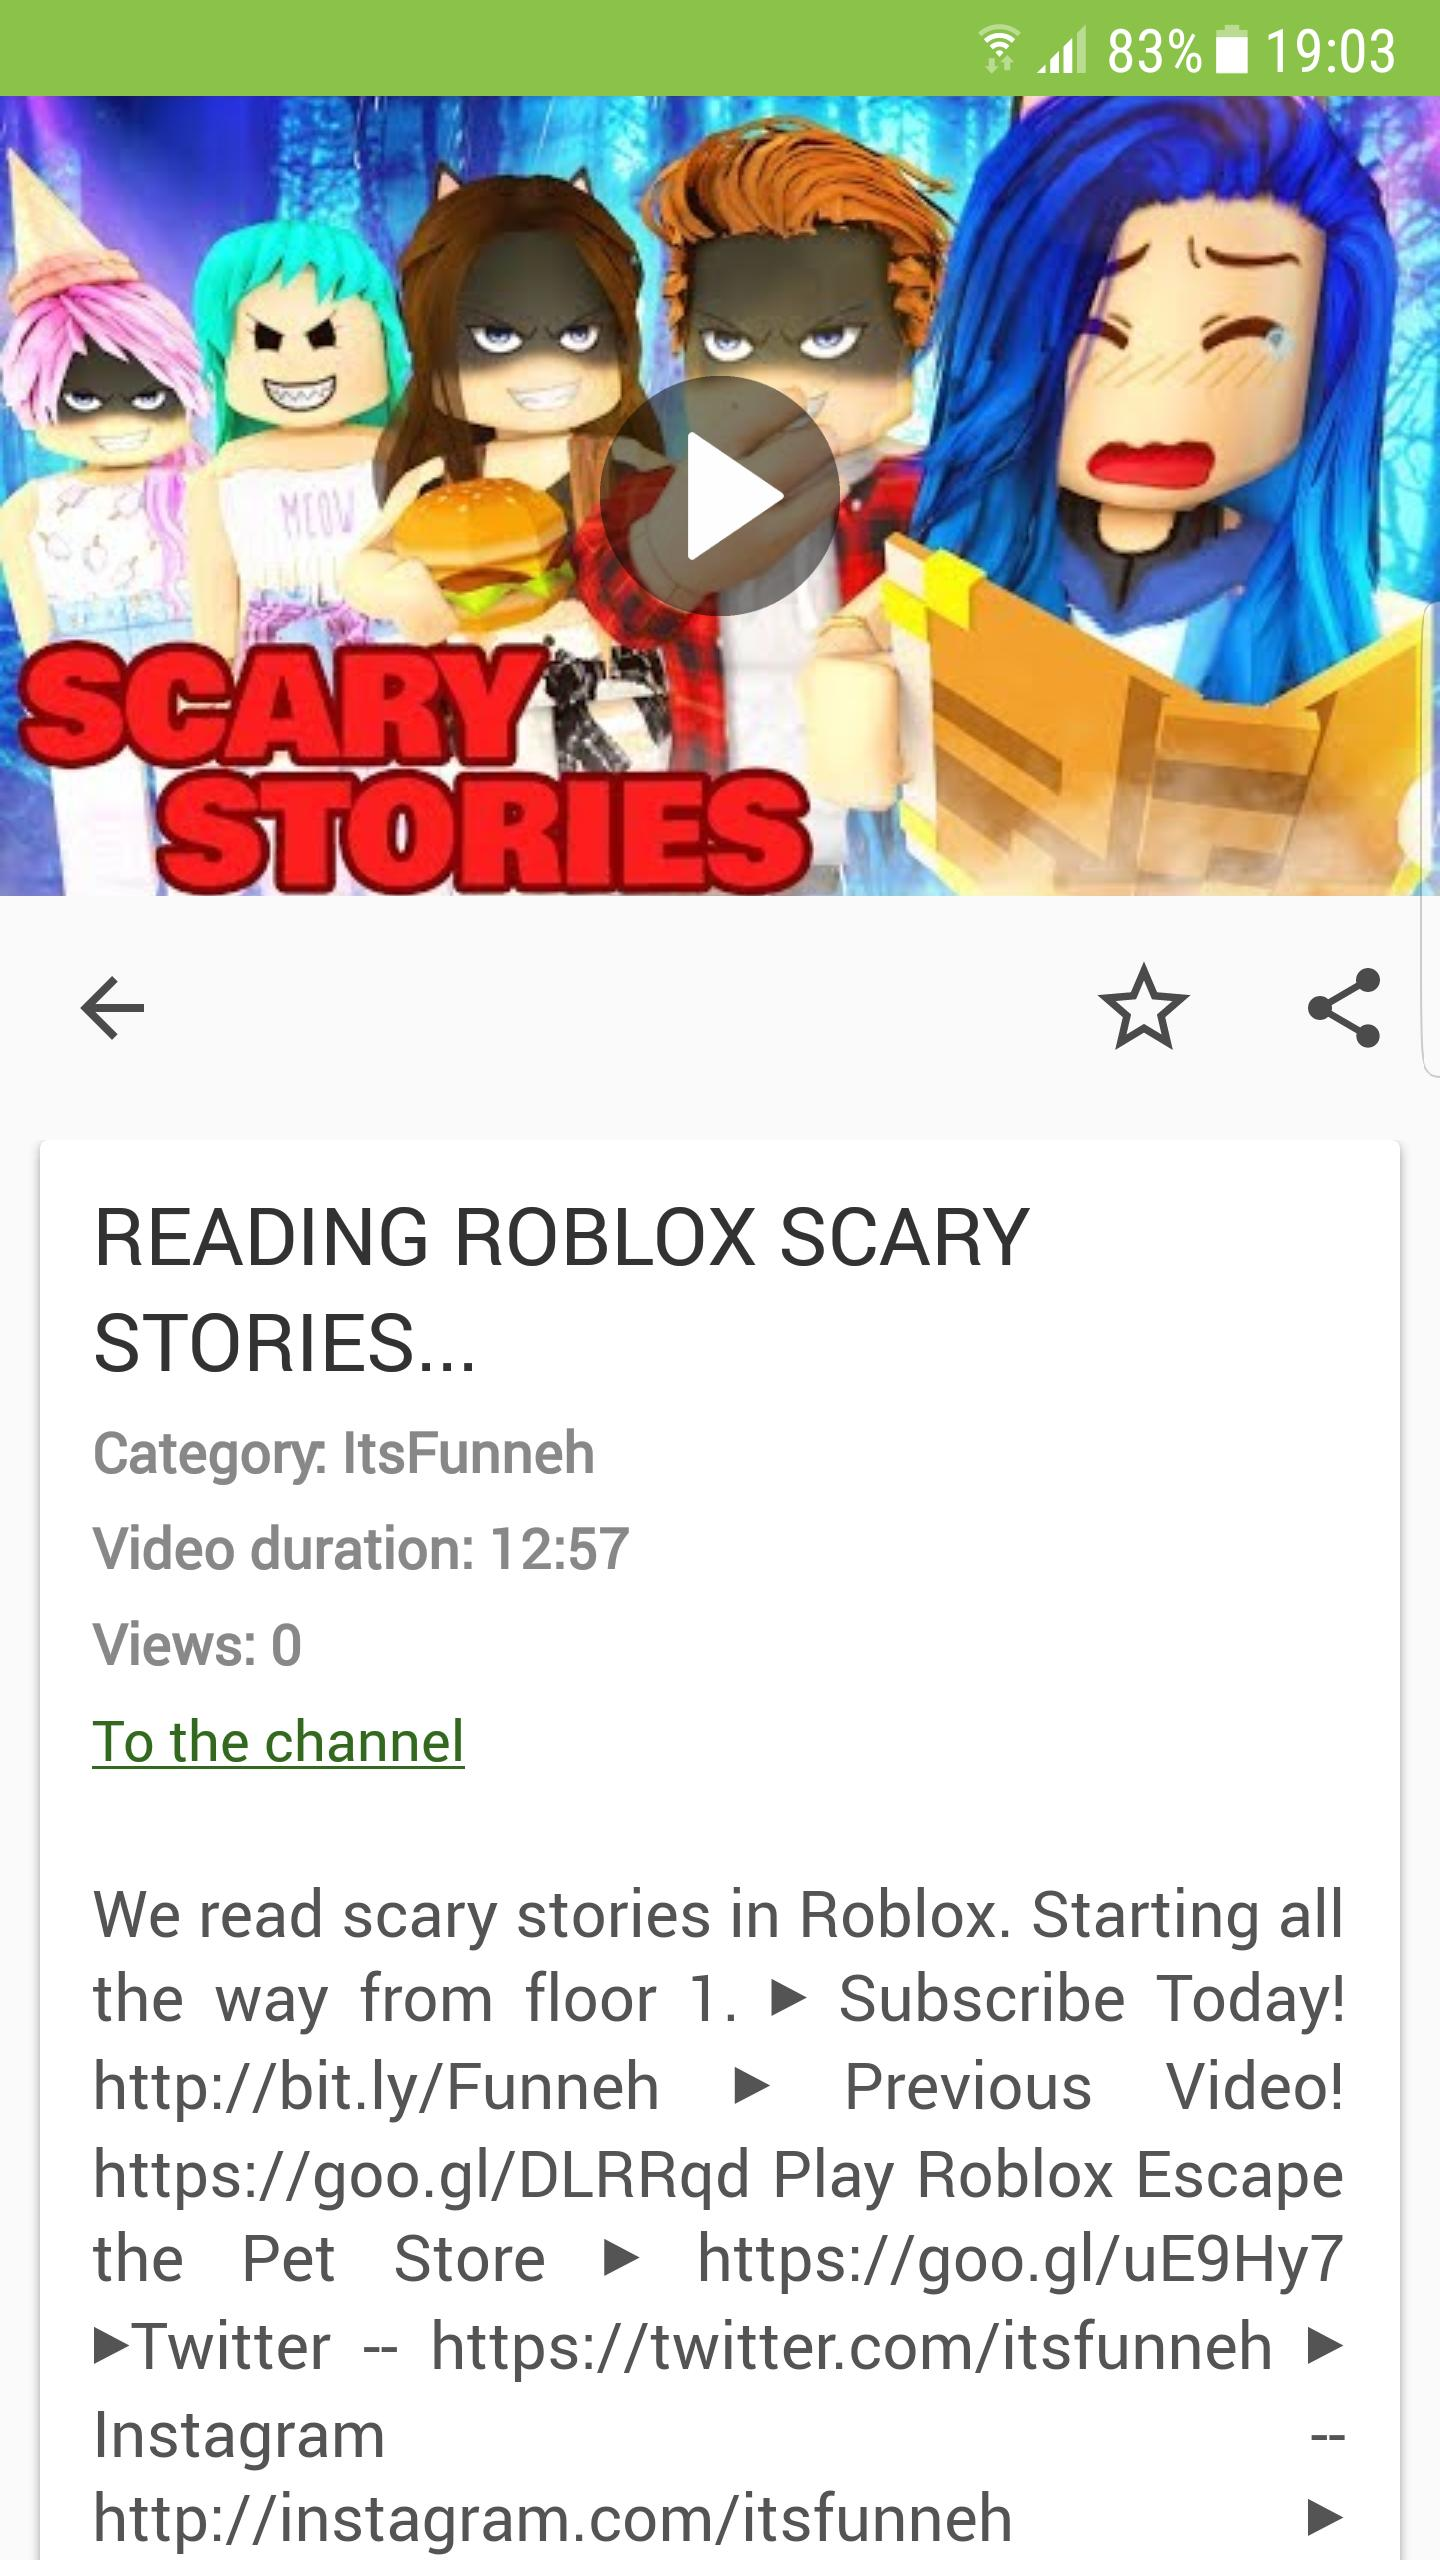 Itsfunneh Roblox Video For Android Apk Download - roblox games vidos its funneh new videos